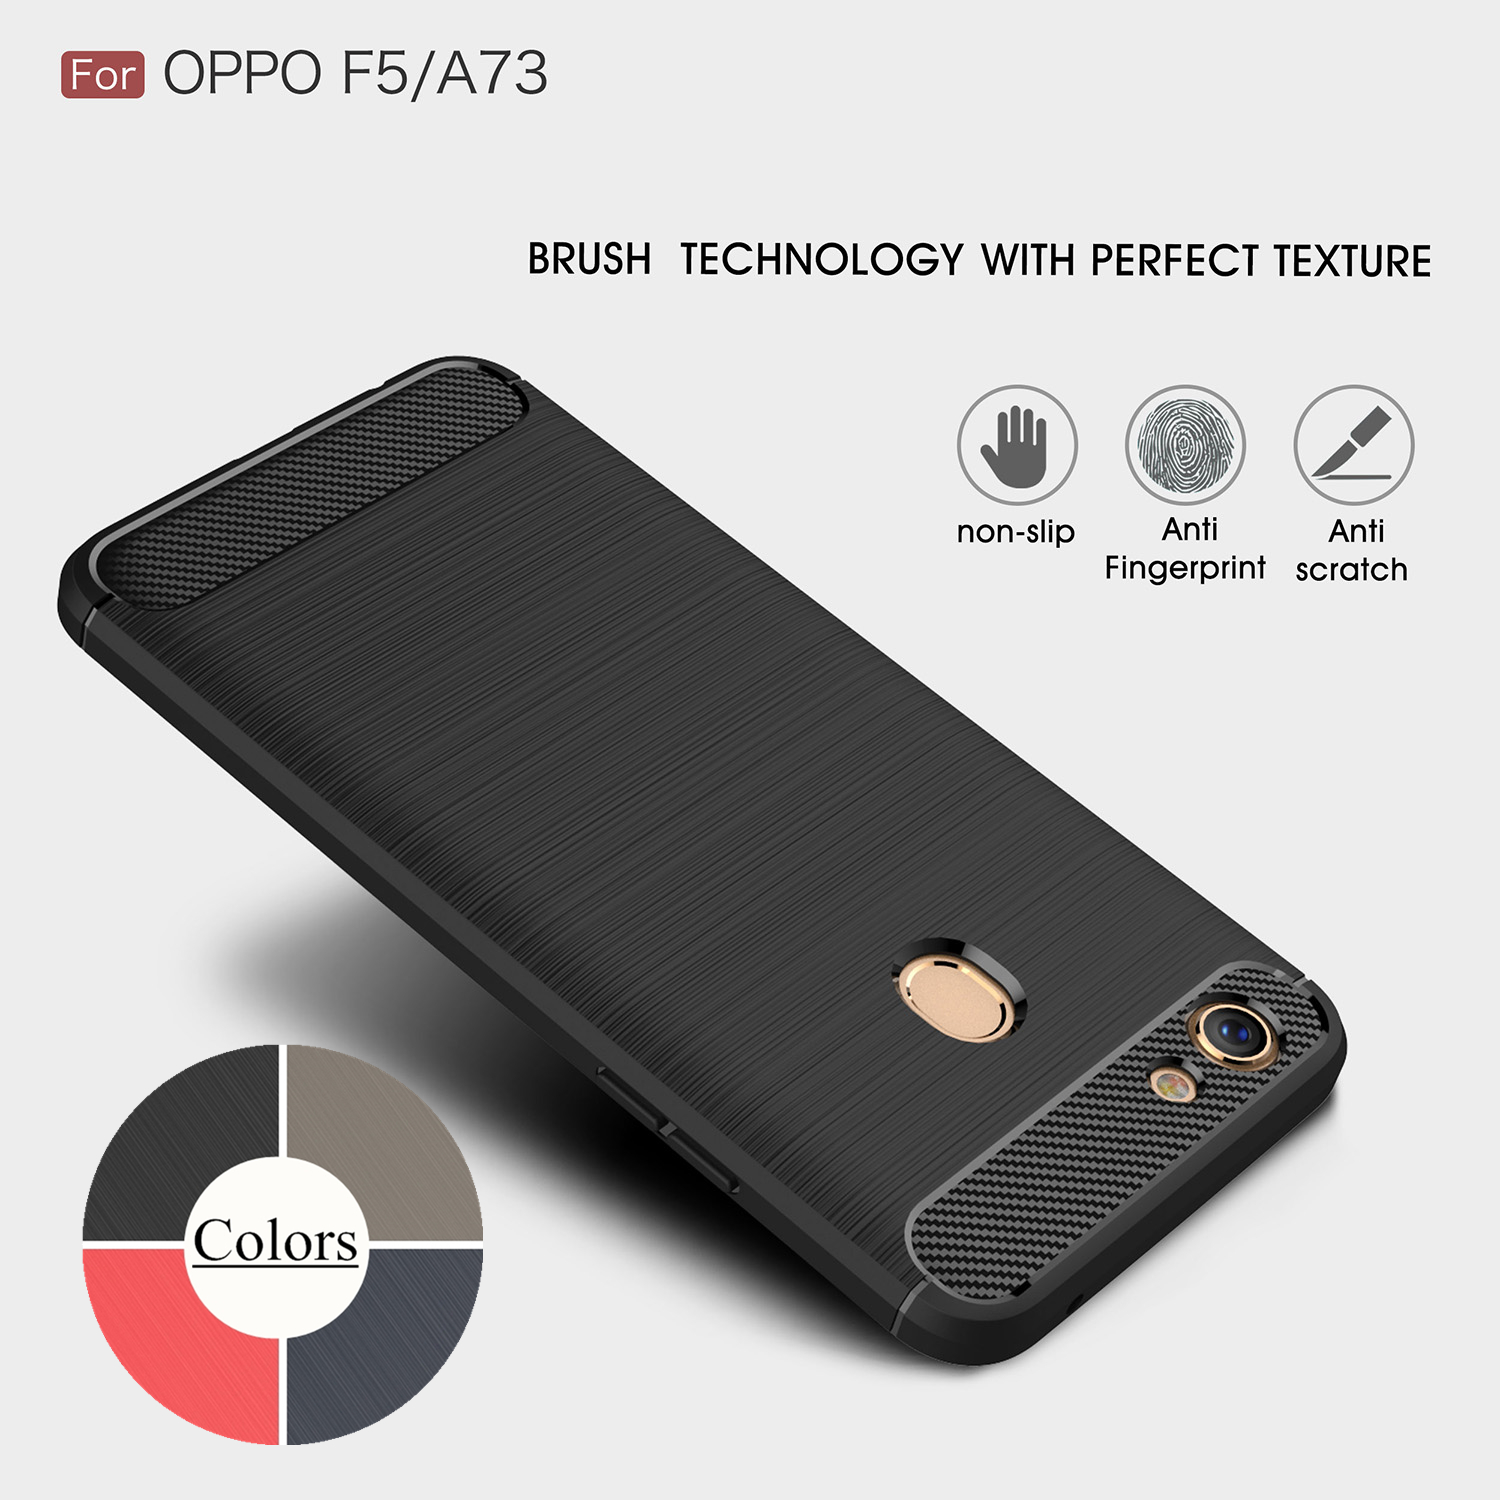 Case For OPPO F5 TPU Silicone Case Ultra-Thin Soft Cover Matte Feel Phone Case Rugged Armor